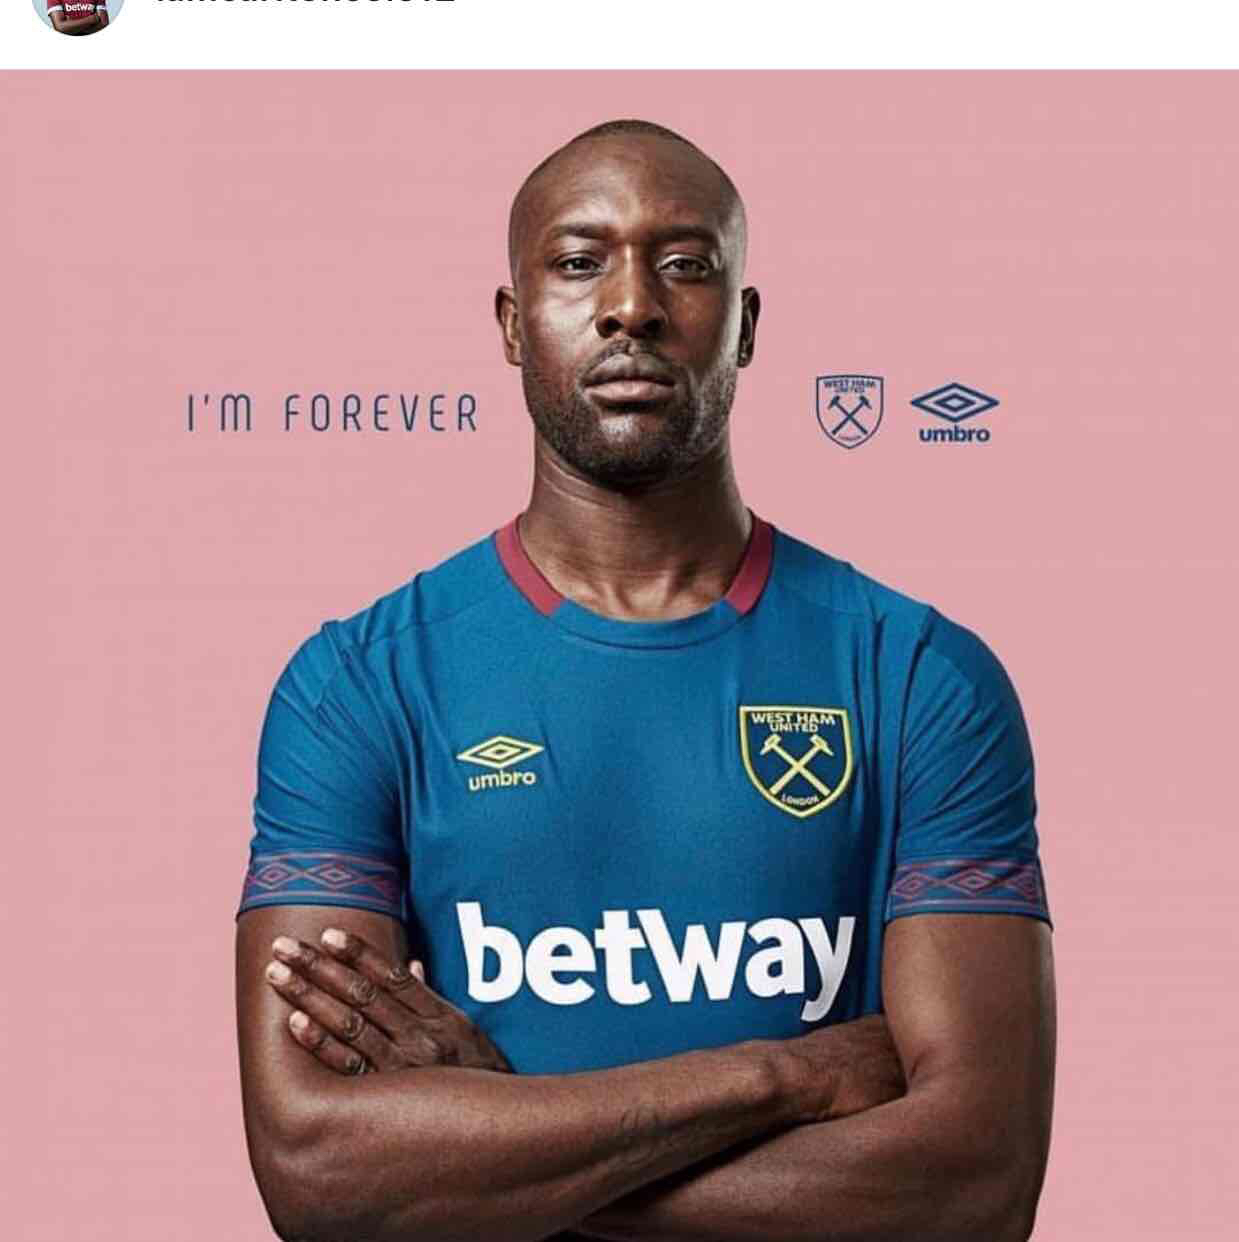 Avatar of Carlton Cole